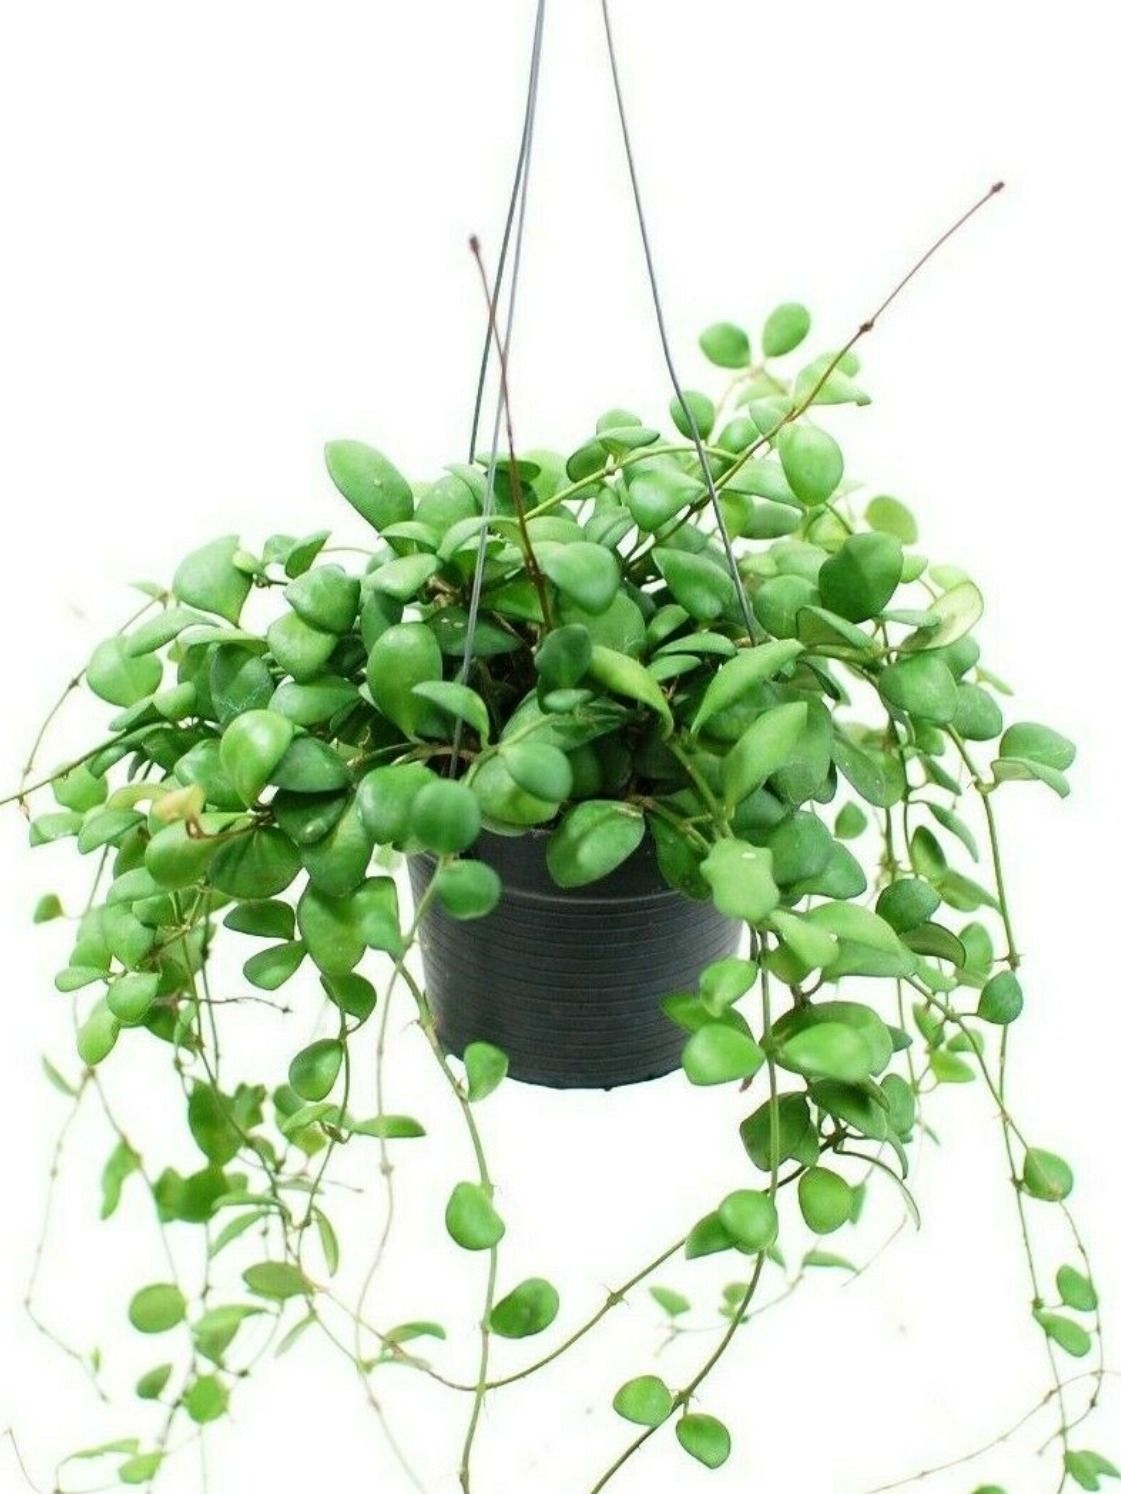 How to Care for Your Hoya Plant